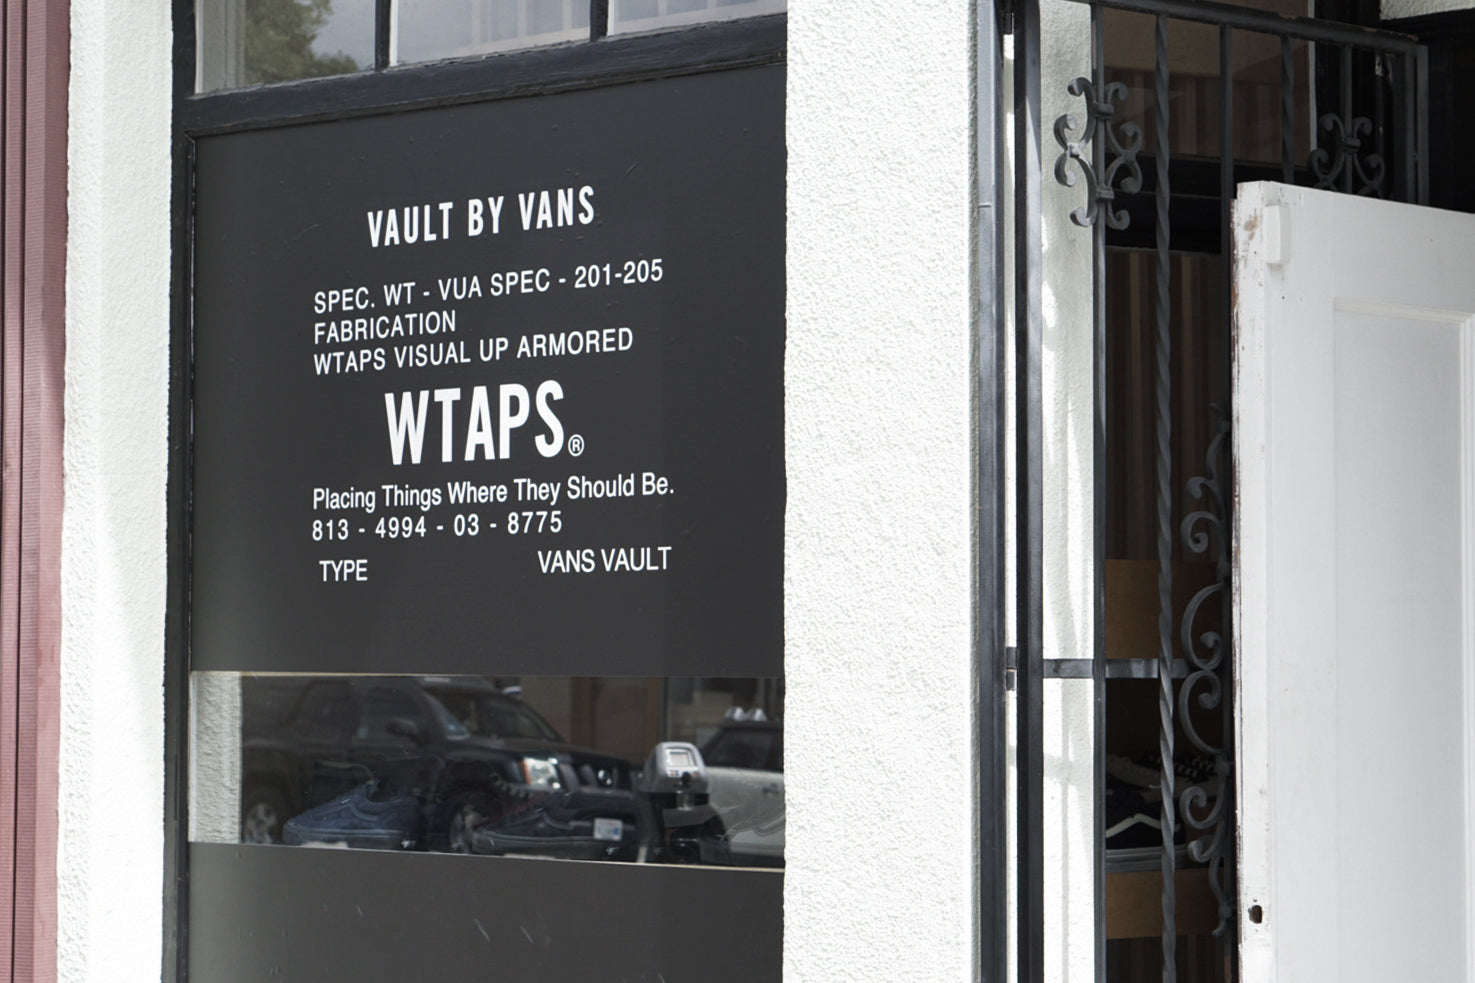 Vault By Vans X Wtaps Window Installation Blends San Diego